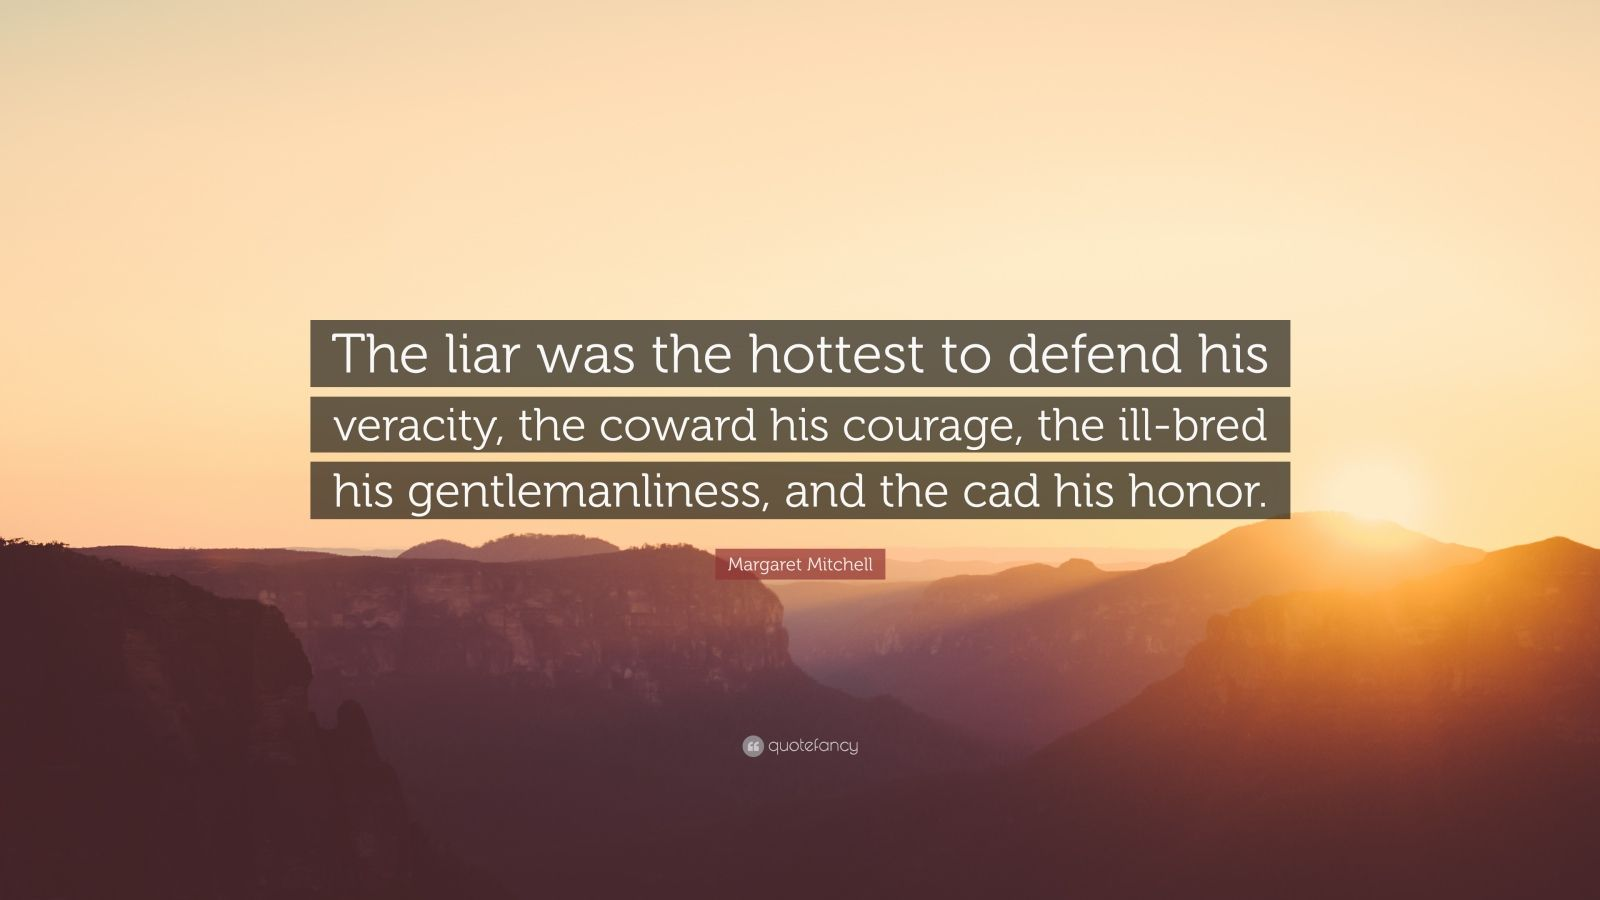 """Margaret Mitchell Quote: """"The liar was the hottest to defend his veracity, the coward his courage, the ill-bred his gentlemanliness, and the cad his honor."""""""